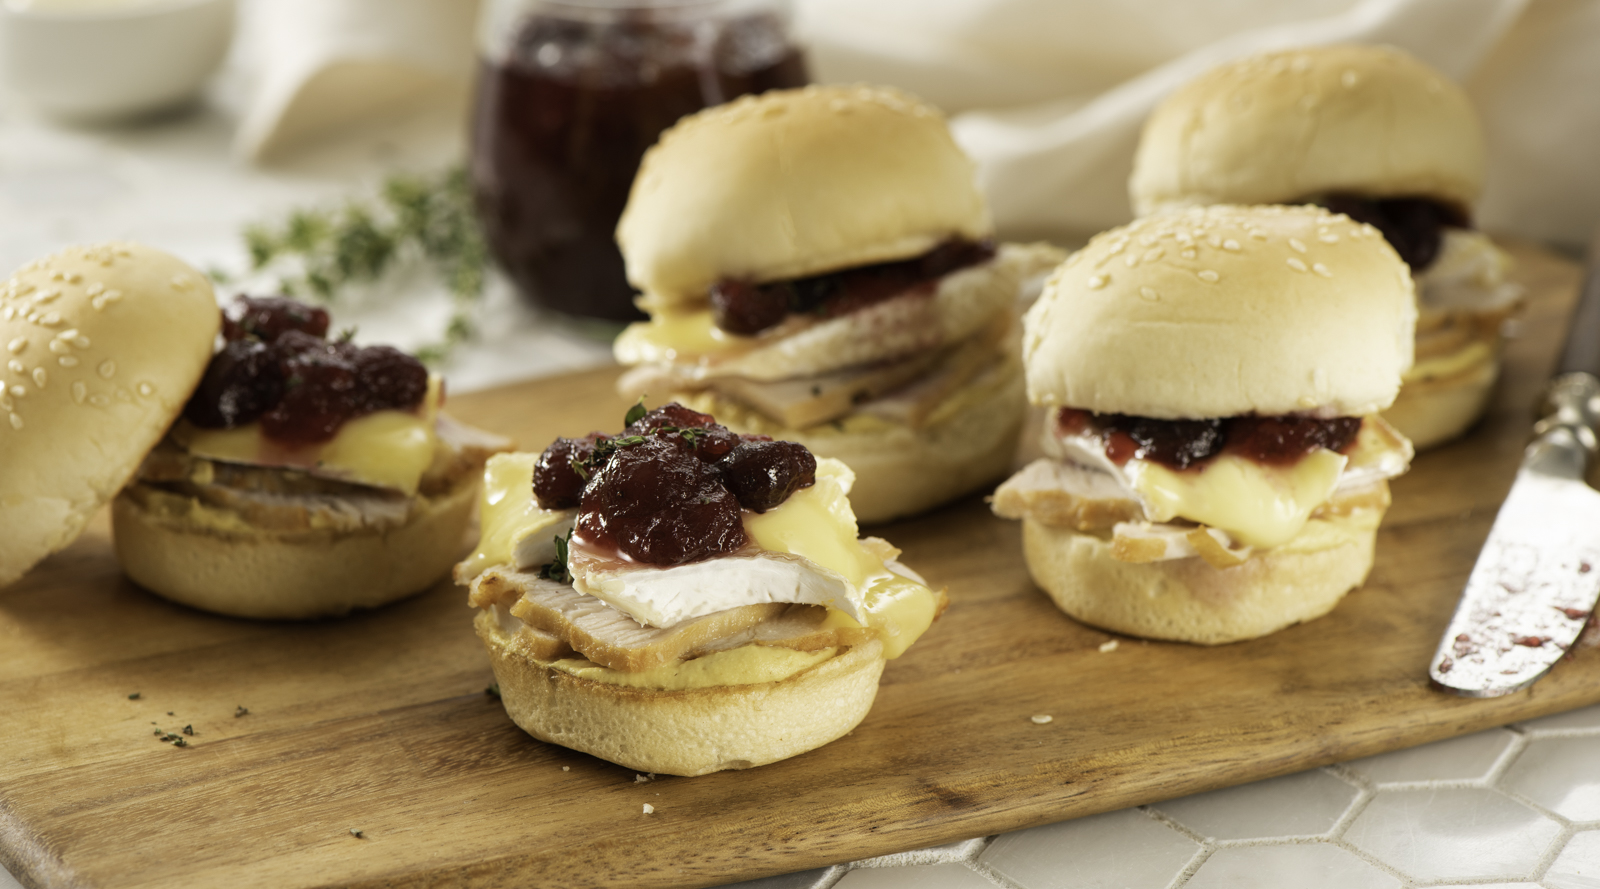 Baked Brie and Turkey Sliders